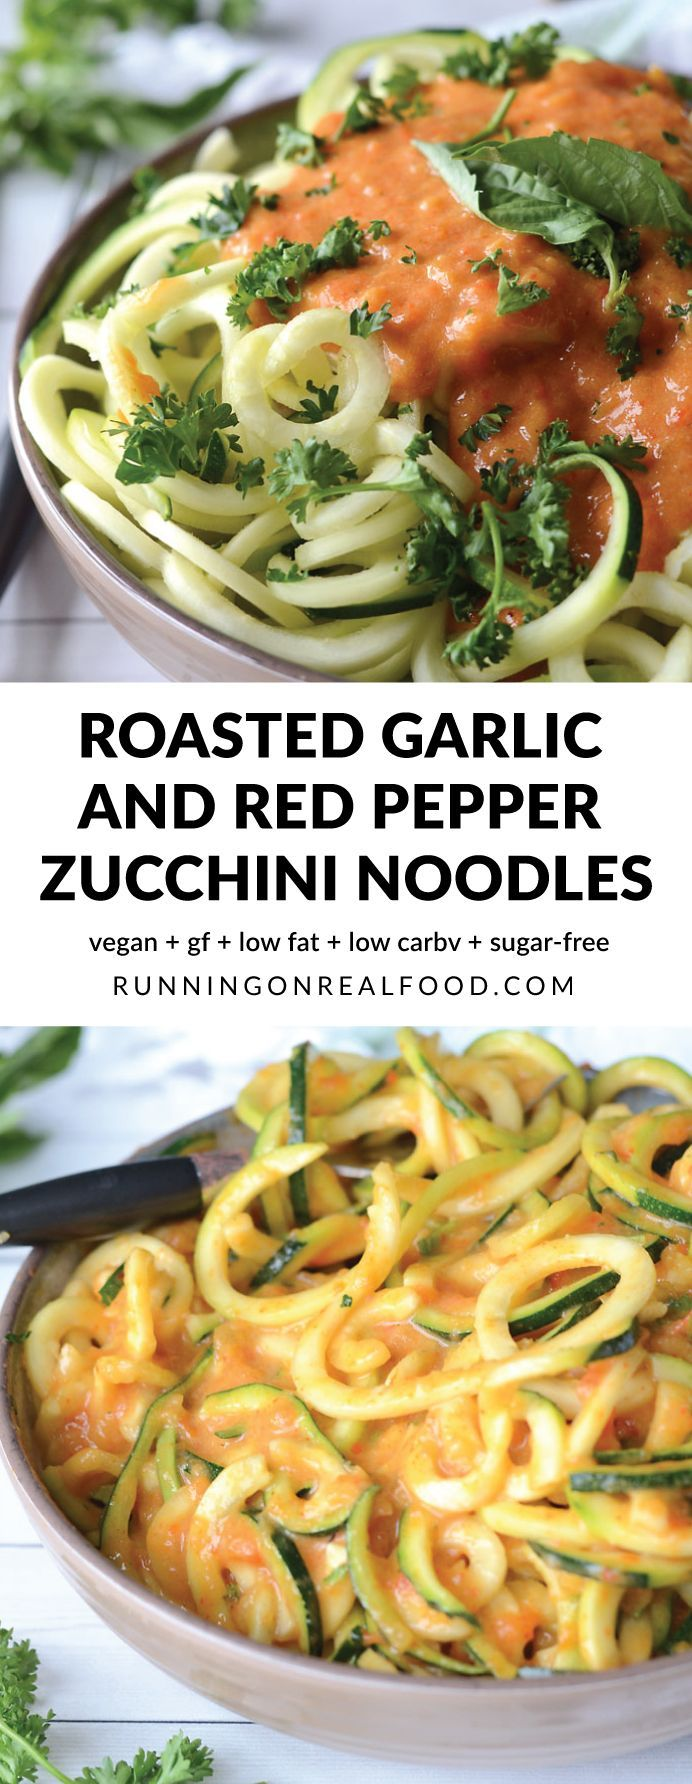 These healthy, vegan roasted garlic and roasted red pepper zoodles are low in carbs and fat with 12 grams of protein per serving. You can enjoy your zucchini noodles or raw or cook them up if you prefer! Easy to make, keeps well, very low calorie alternative to pasta. Full of flavour and nutrition.  Recipe: http://runningonrealfood.com/roasted-garlic-and-red-pepper-zoodles/